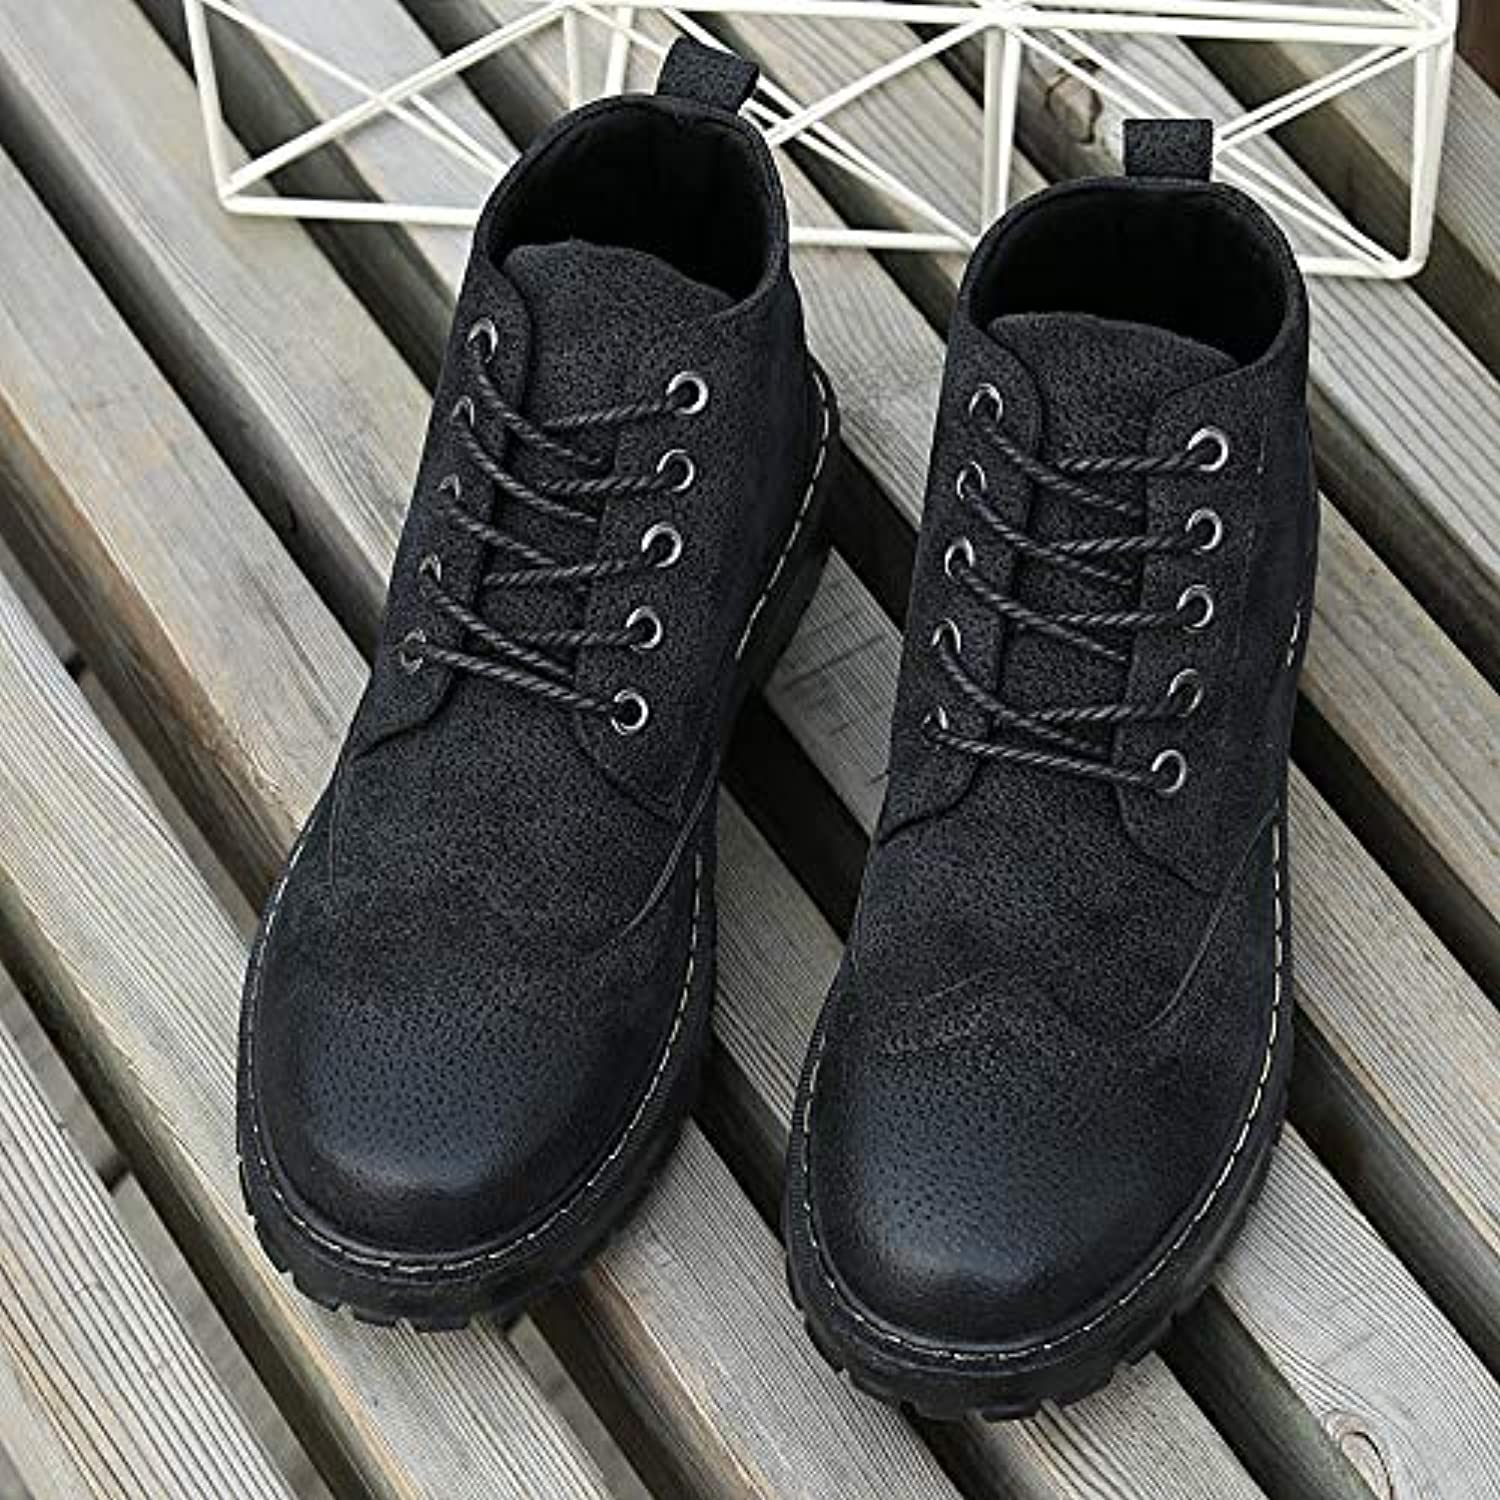 Shukun Men's boots Autumn And Winter Men'S shoes Martin Boots High Help Tooling Boots shoes Wild Casual shoes Wear High shoes